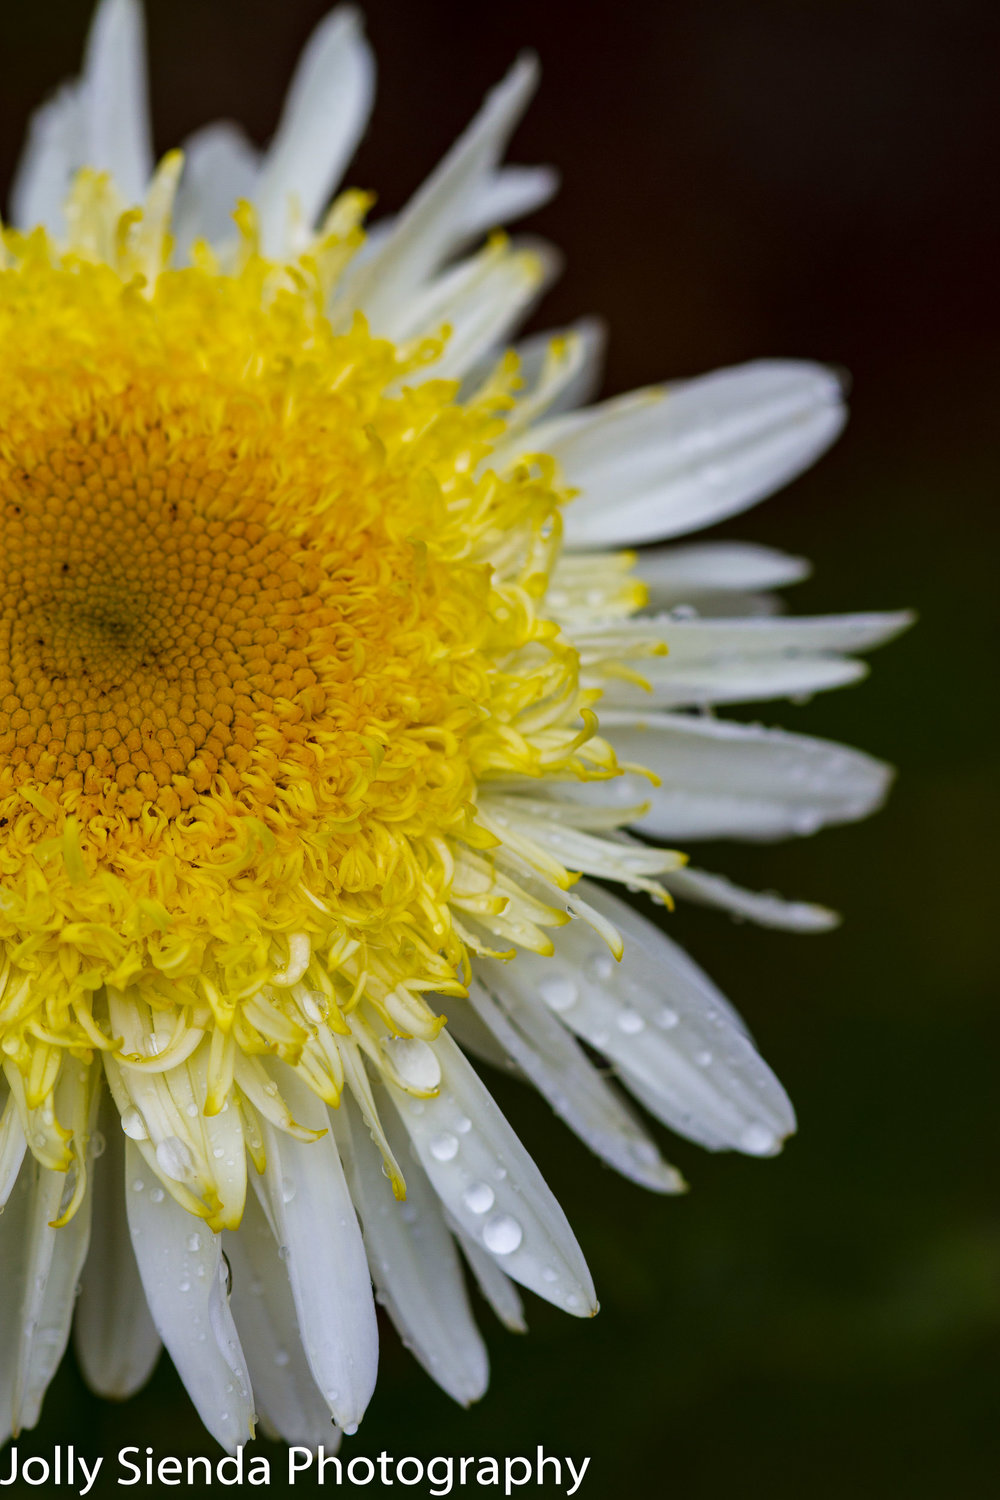 Yellow and white daisy with water droplets